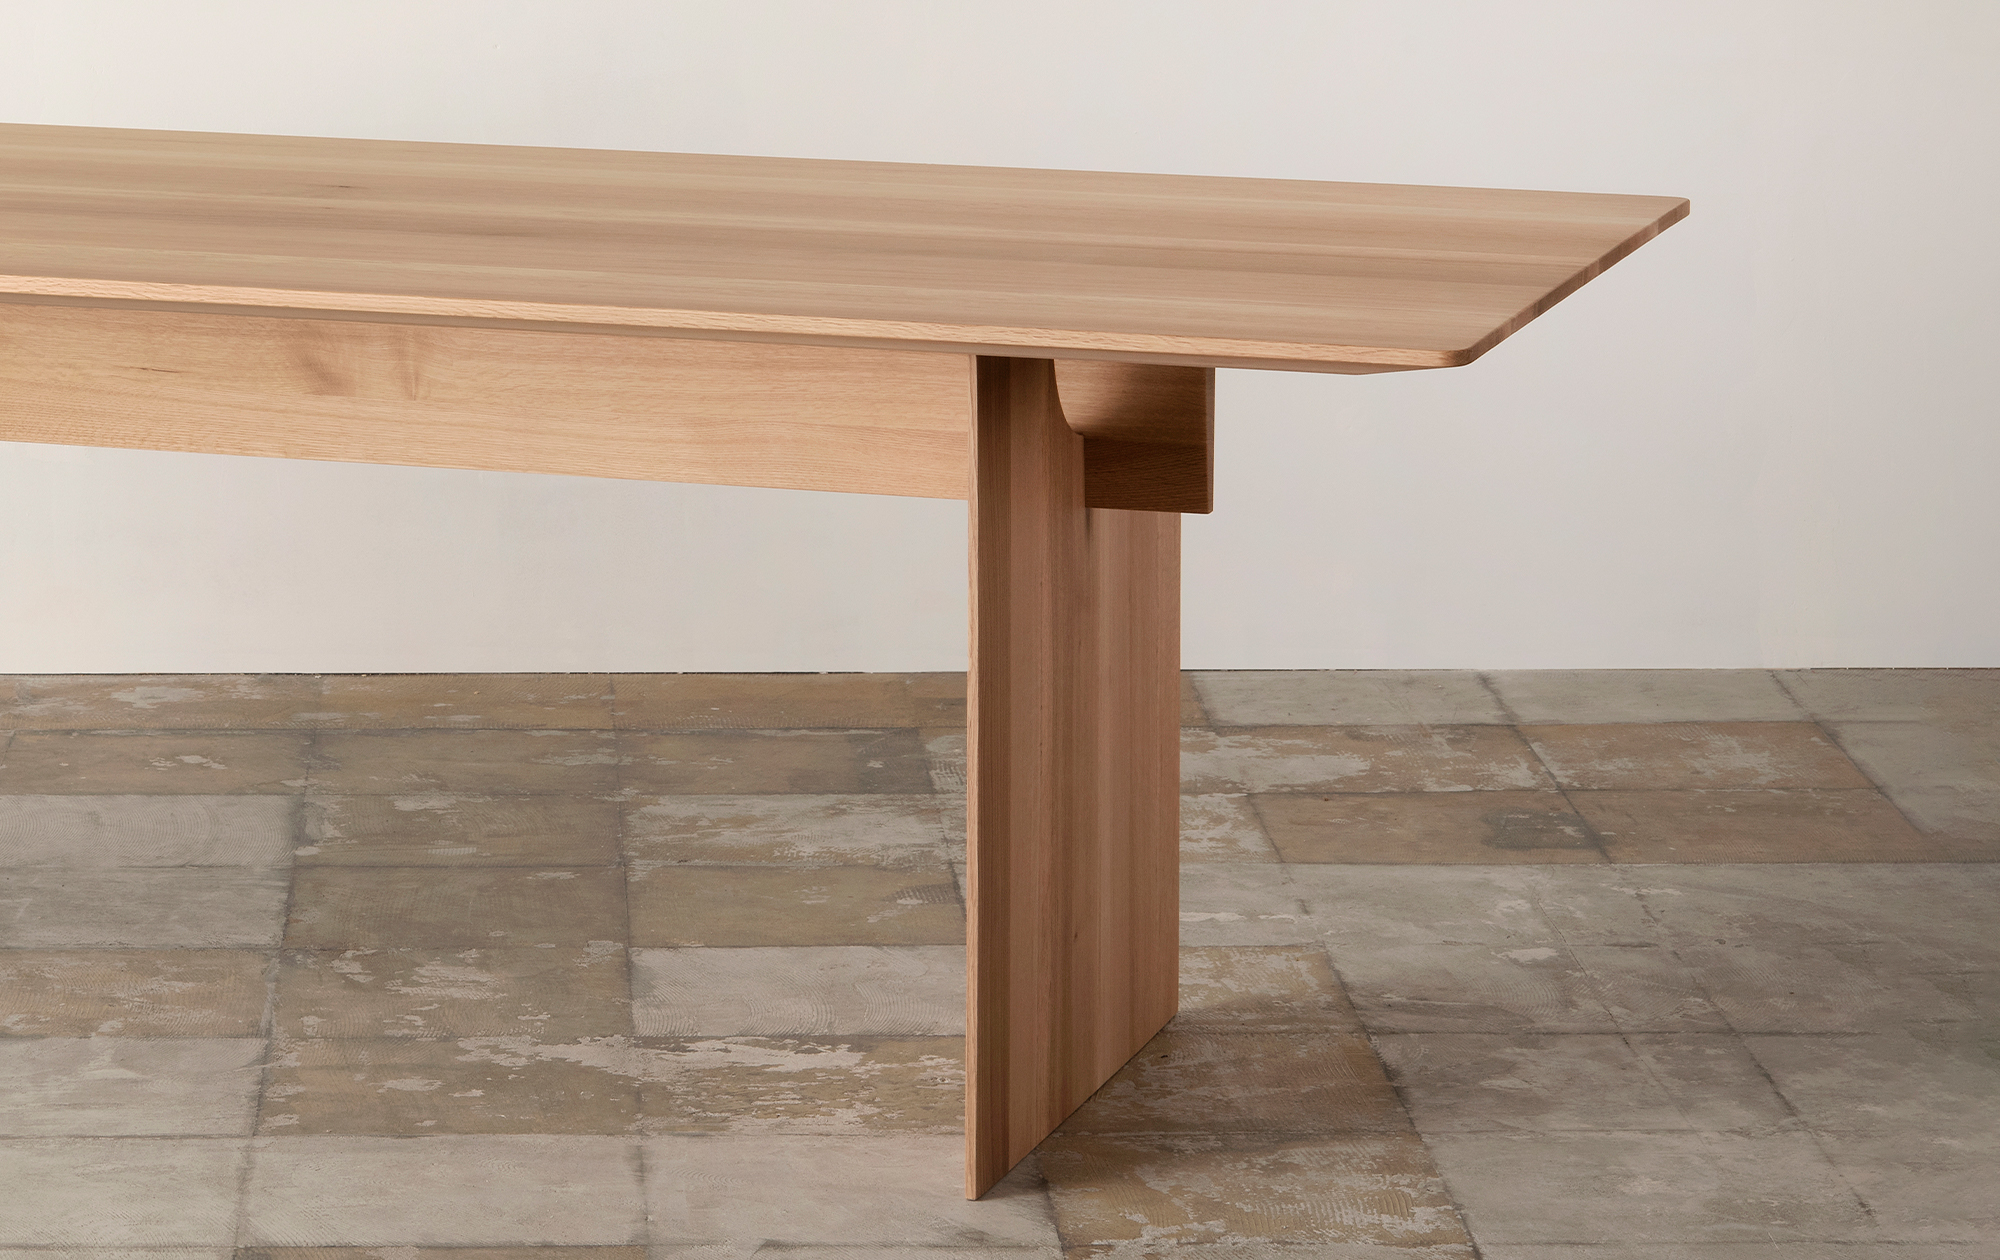 Karimoku Case Study: Dining Table